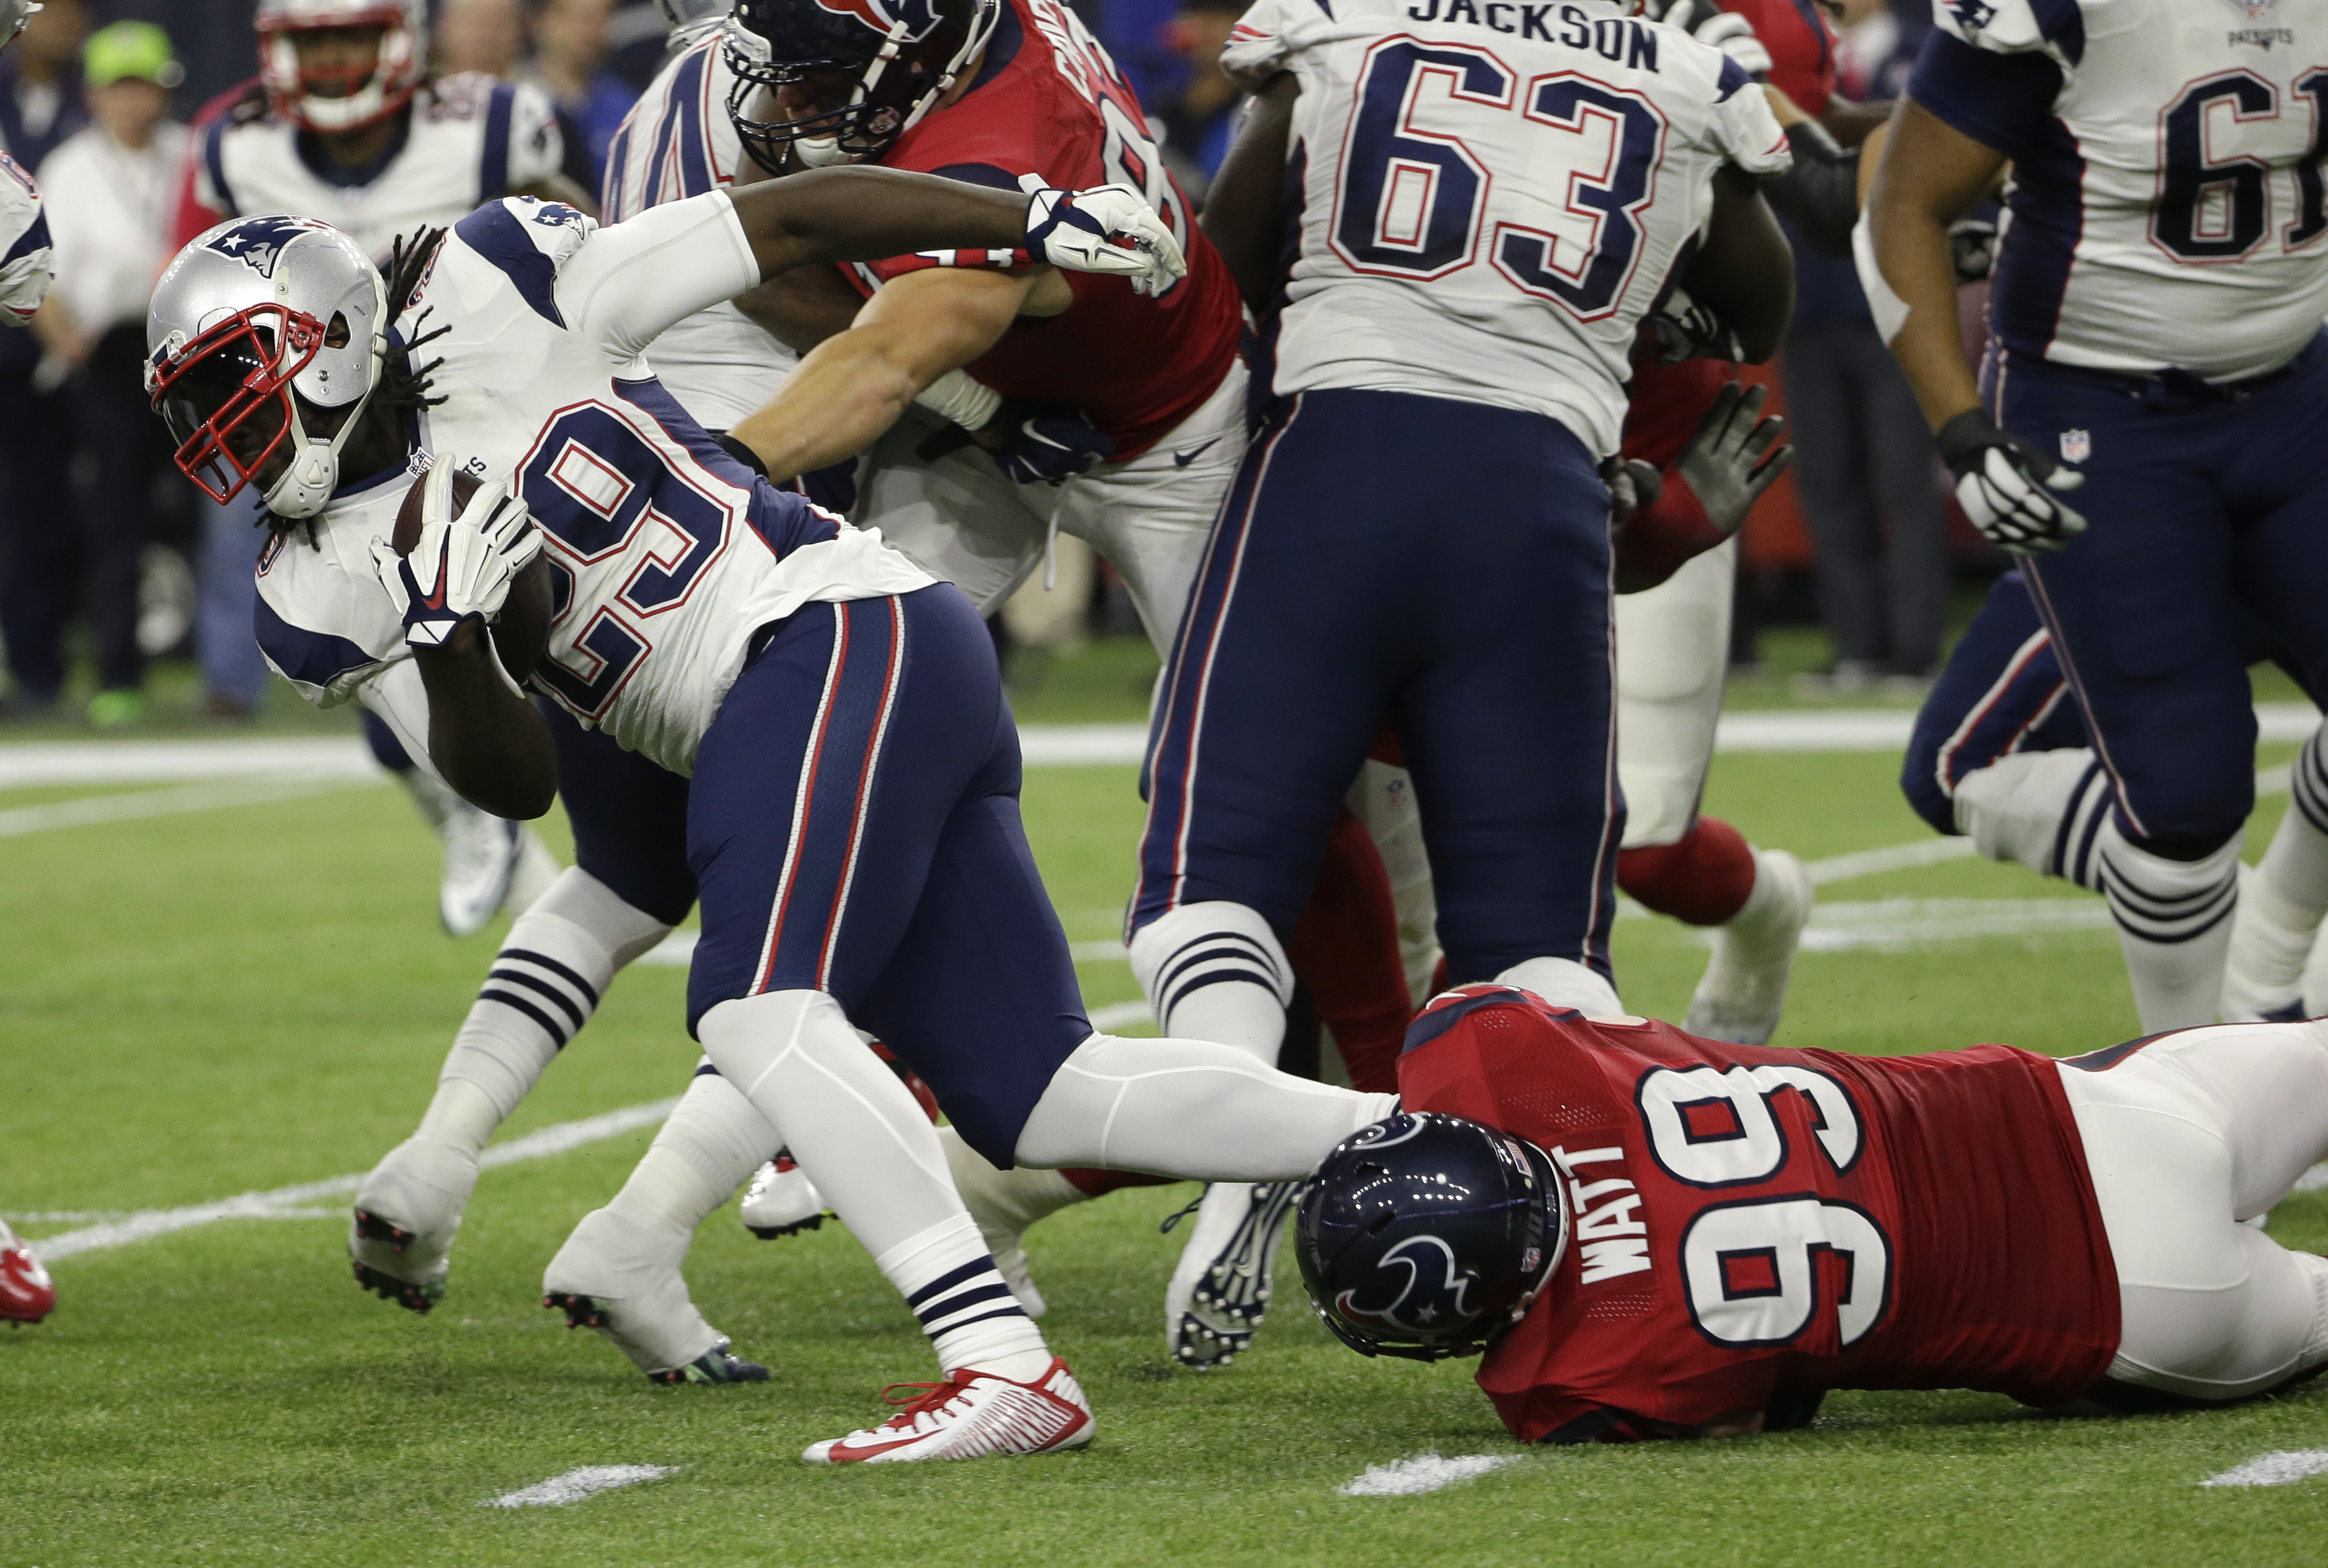 New England Patriots running back LeGarrette Blount (29) is stopped by Houston Texans defensive end J.J. Watt (99) during the first half of an NFL football game, Sunday, Dec. 13, 2015, in Houston. (AP Photo/David J. Phillip)